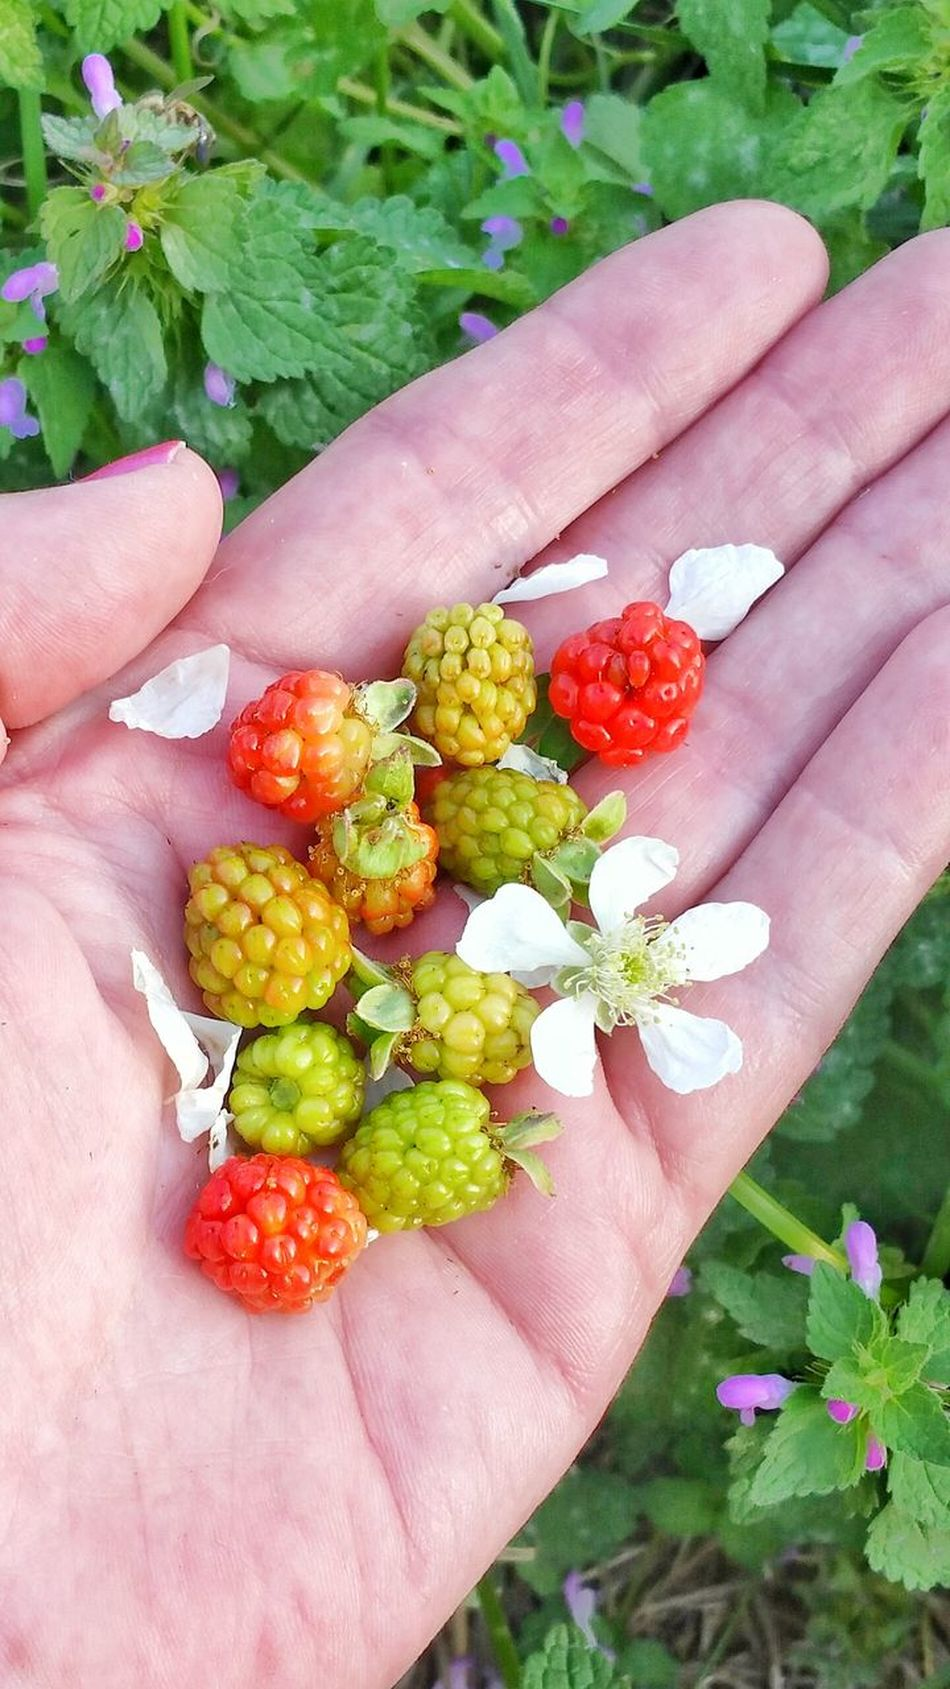 Human Hand Multi Colored Flower Holding Close-up Nature People Freshness Food Outdoors Women Fruit Lifestyles Flower Head Adult Berry Fruit Variation Unripe Palm Healthy Eating Wild Blackberries Dew Berries Blackberry Backgrounds Room For Text Break The Mold TCPM